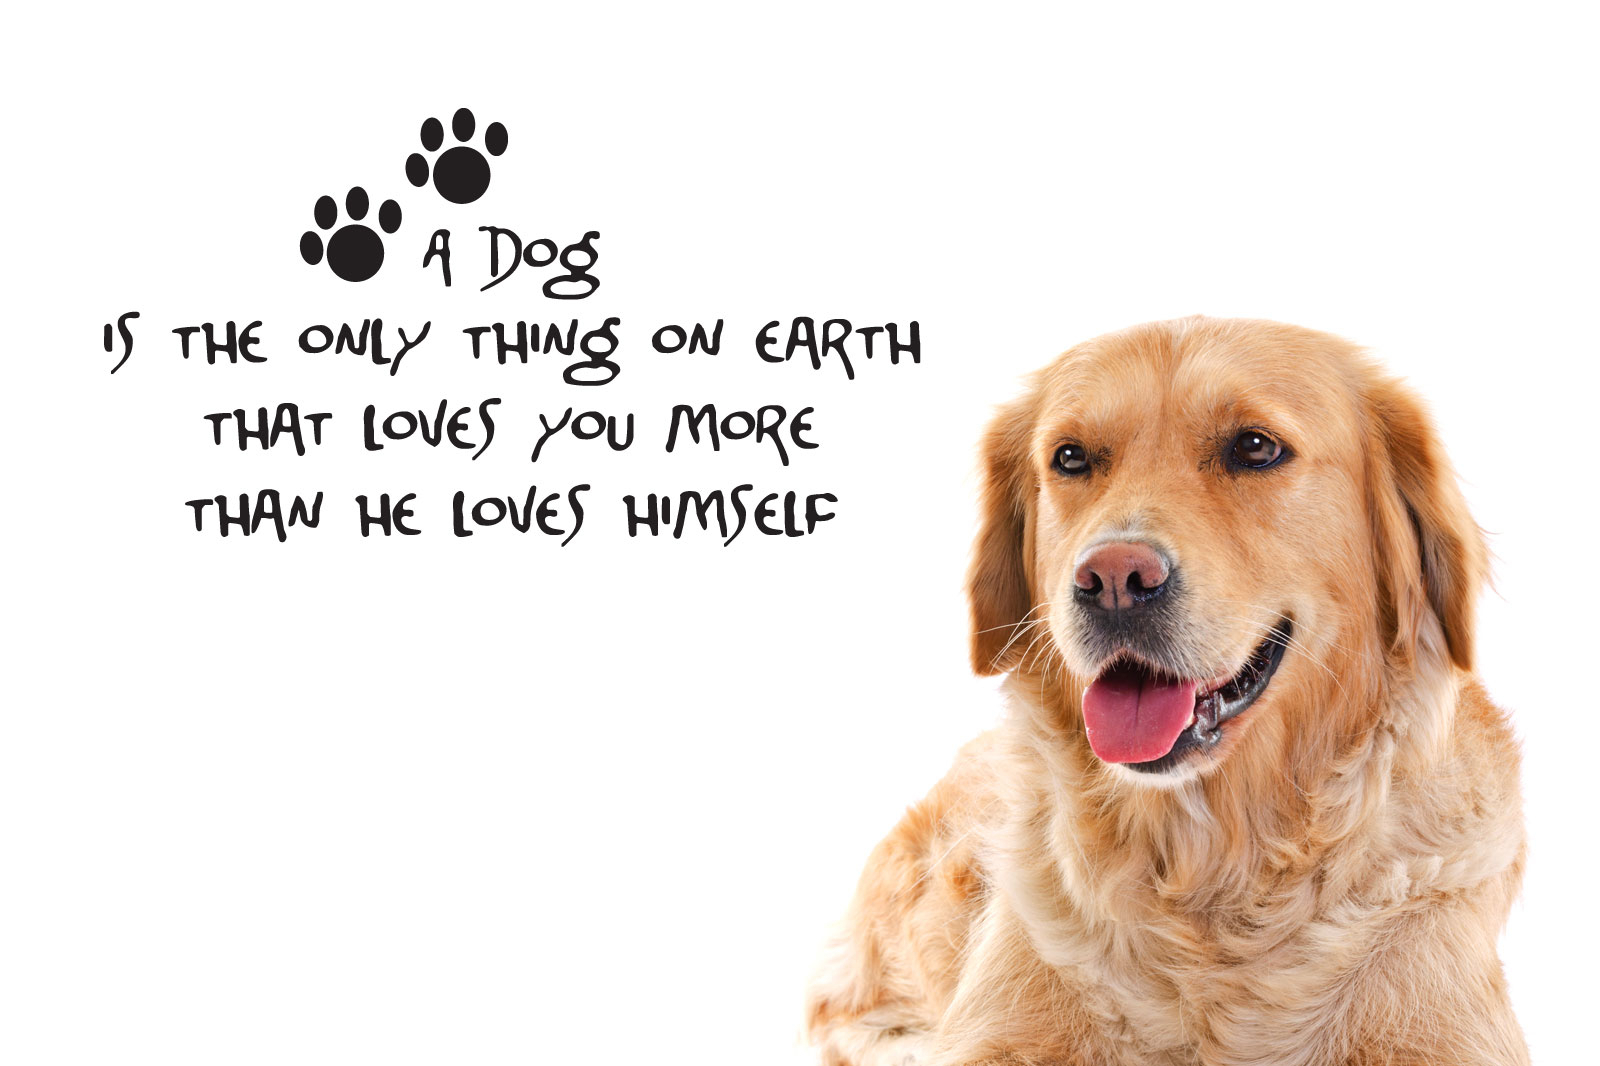 Inspiring Animals Backgrounds In High Quality: Dog Quotesbrook